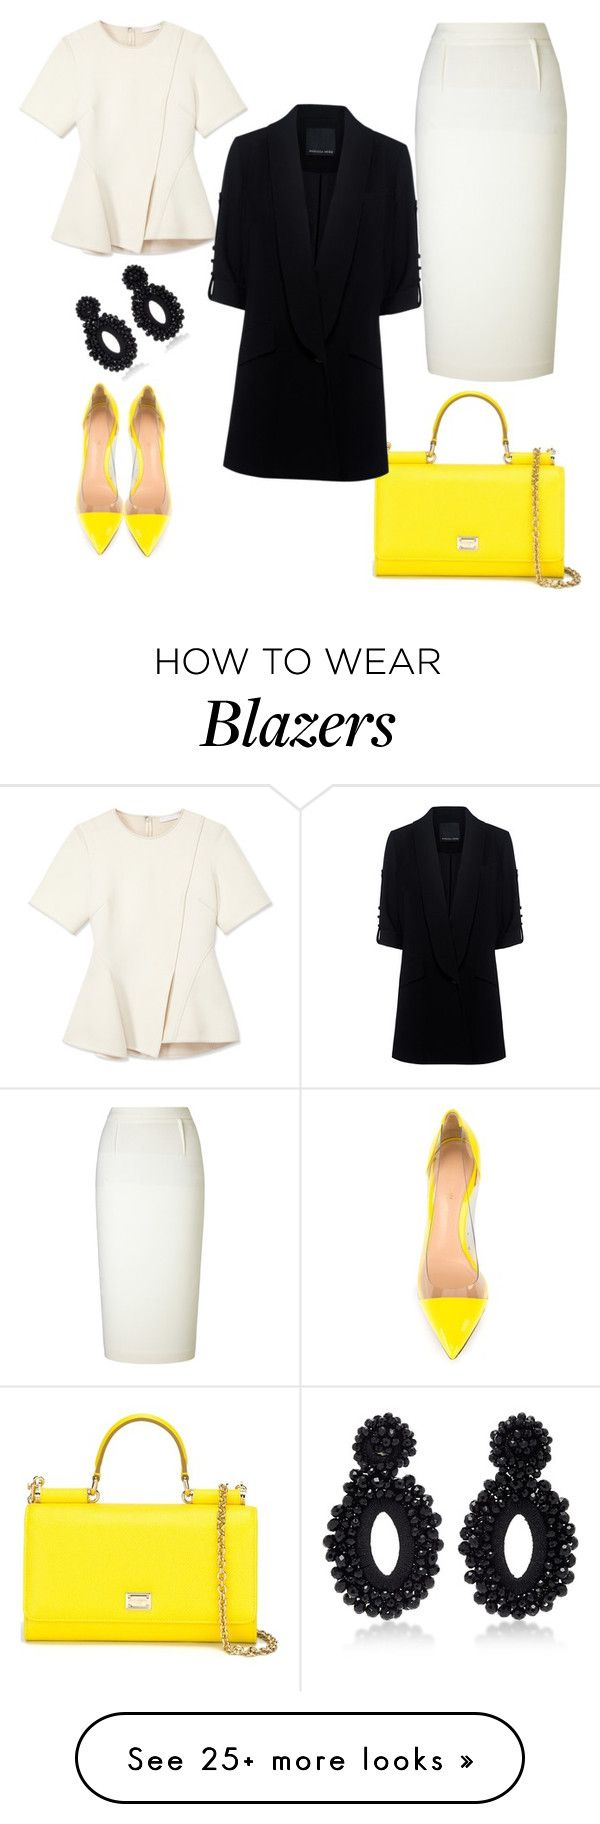 """Untitled #703"" by crazybookladysuzejn on Polyvore featuring Gianvito Rossi, Roland Mouret, Dolce&Gabbana, Bibi Marini, Alexander Wang and Marissa Webb"